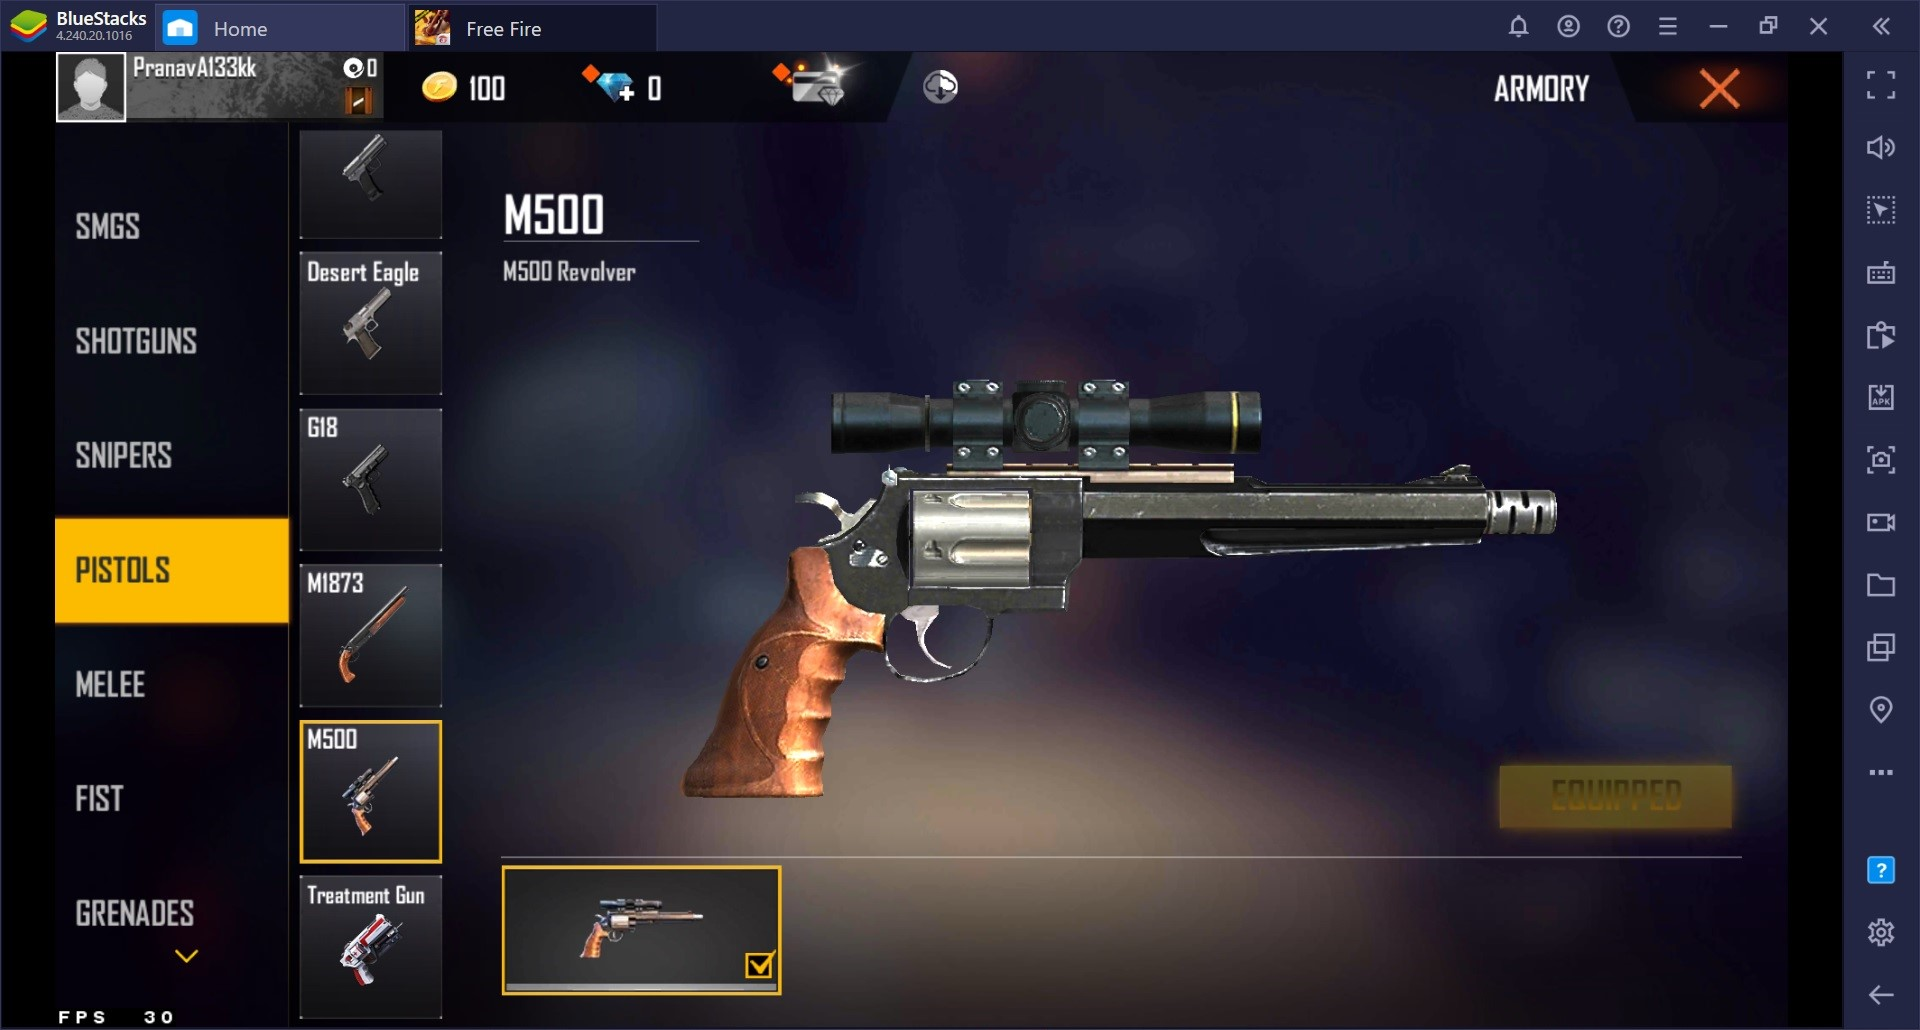 Free Fire Has Crazy Weapons and This Weapon Guide Will Explain Them